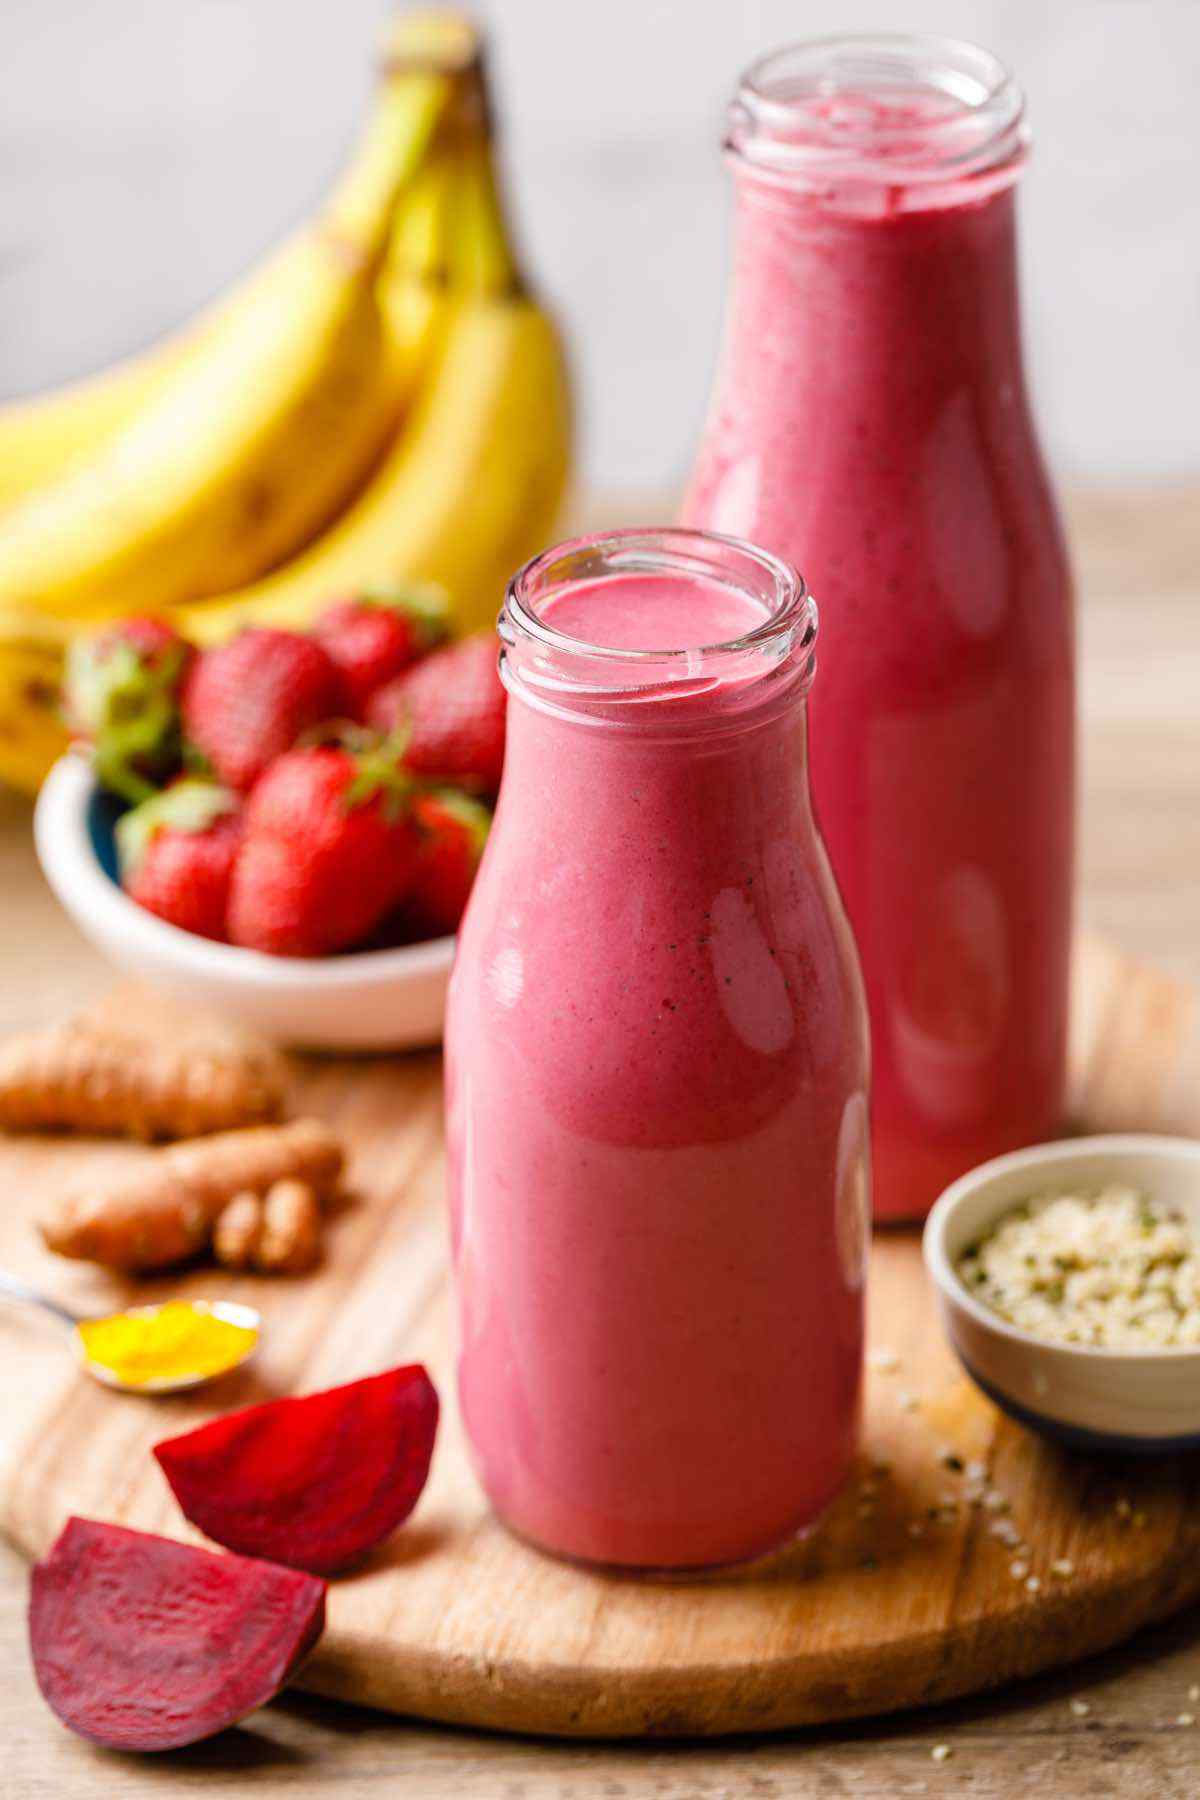 Strawberry Banana Detox Smoothie